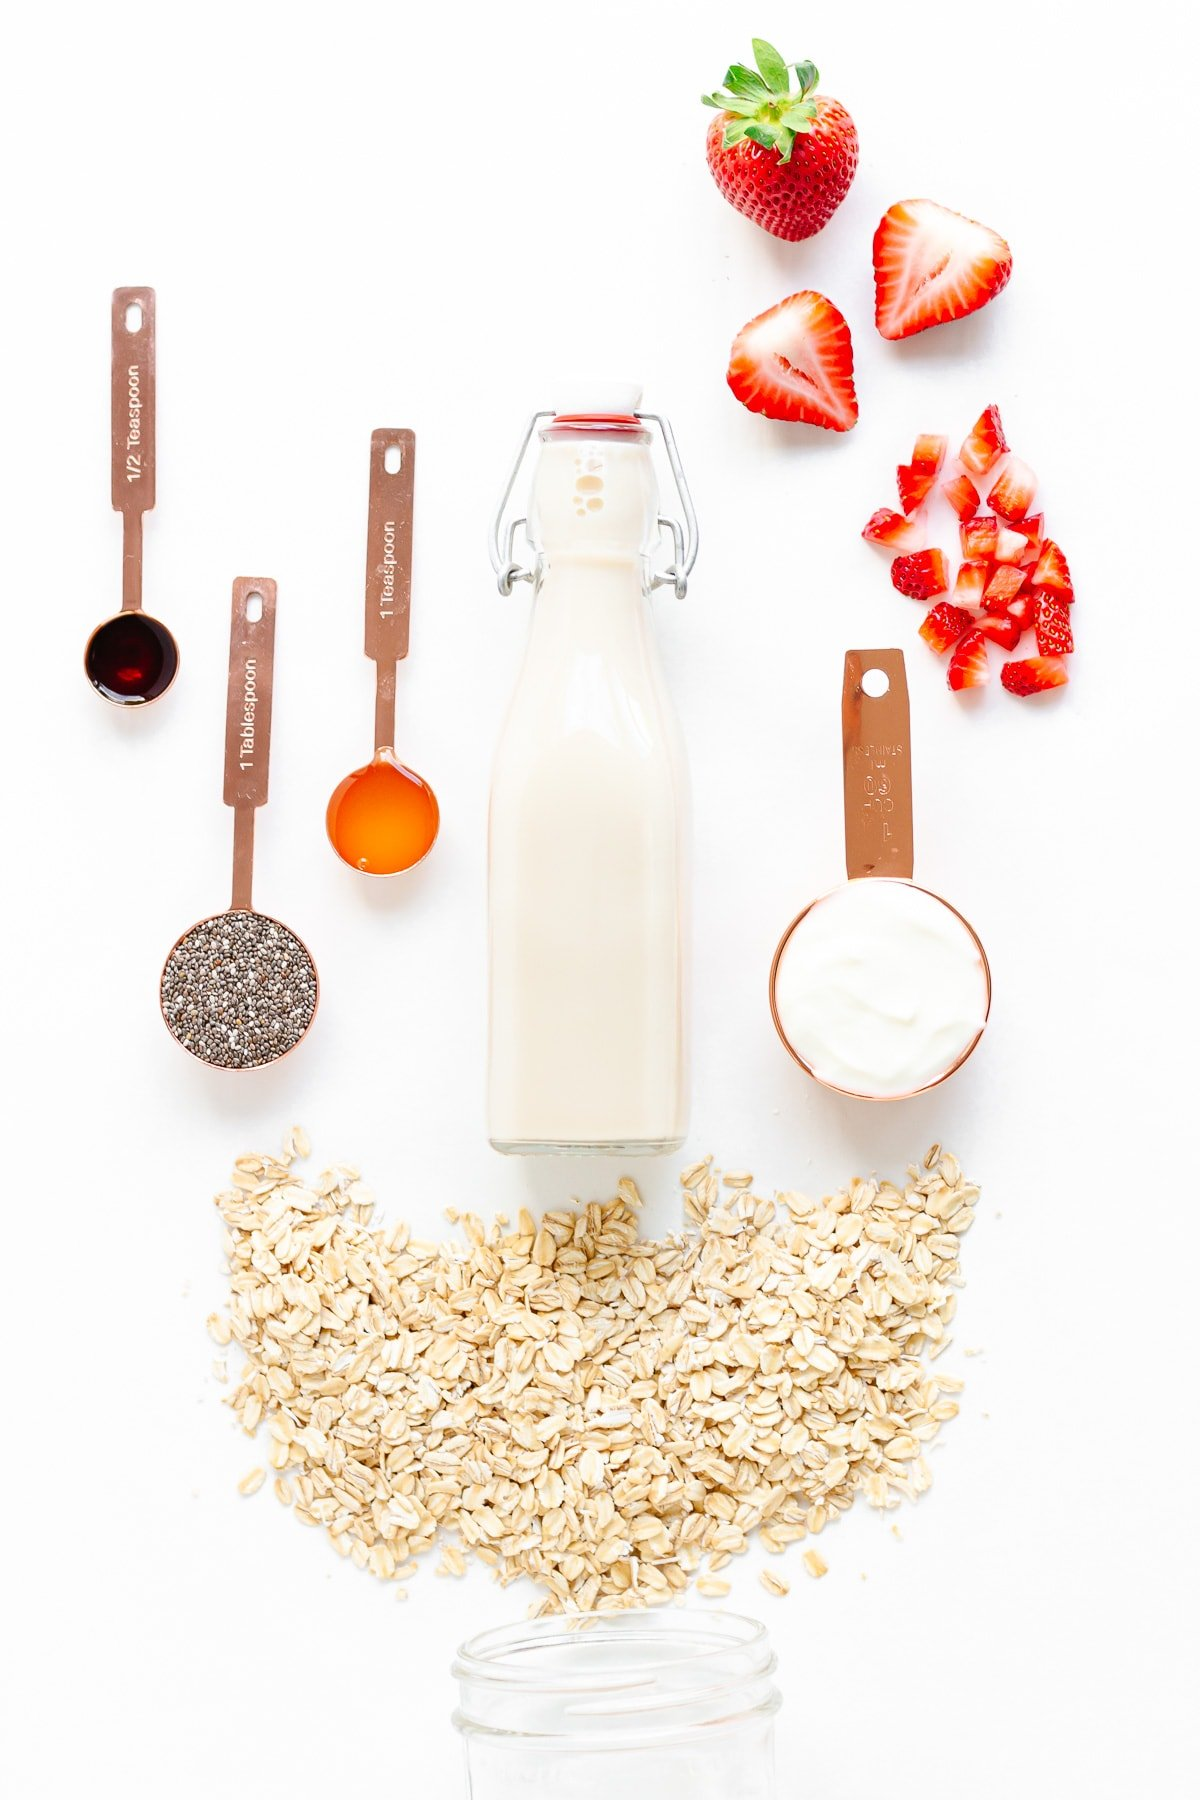 Ingredients needed to make strawberry overnight oats arranged on a white background.